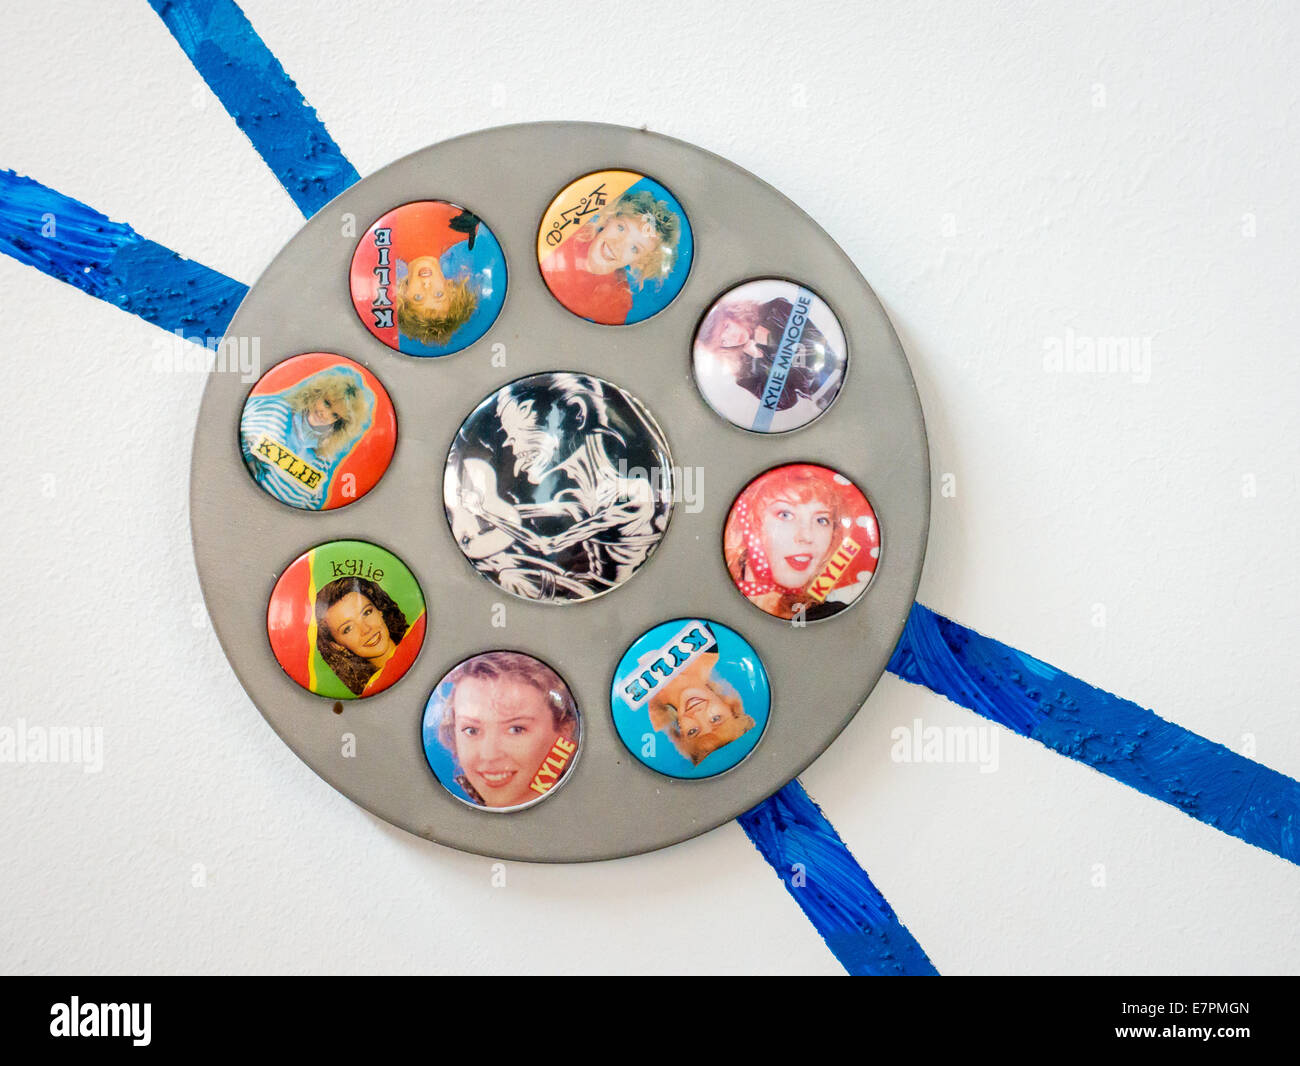 Roundel of Kylie Minogue badges on the badge wall artwork at Colston Hall Bristol UK - Stock Image